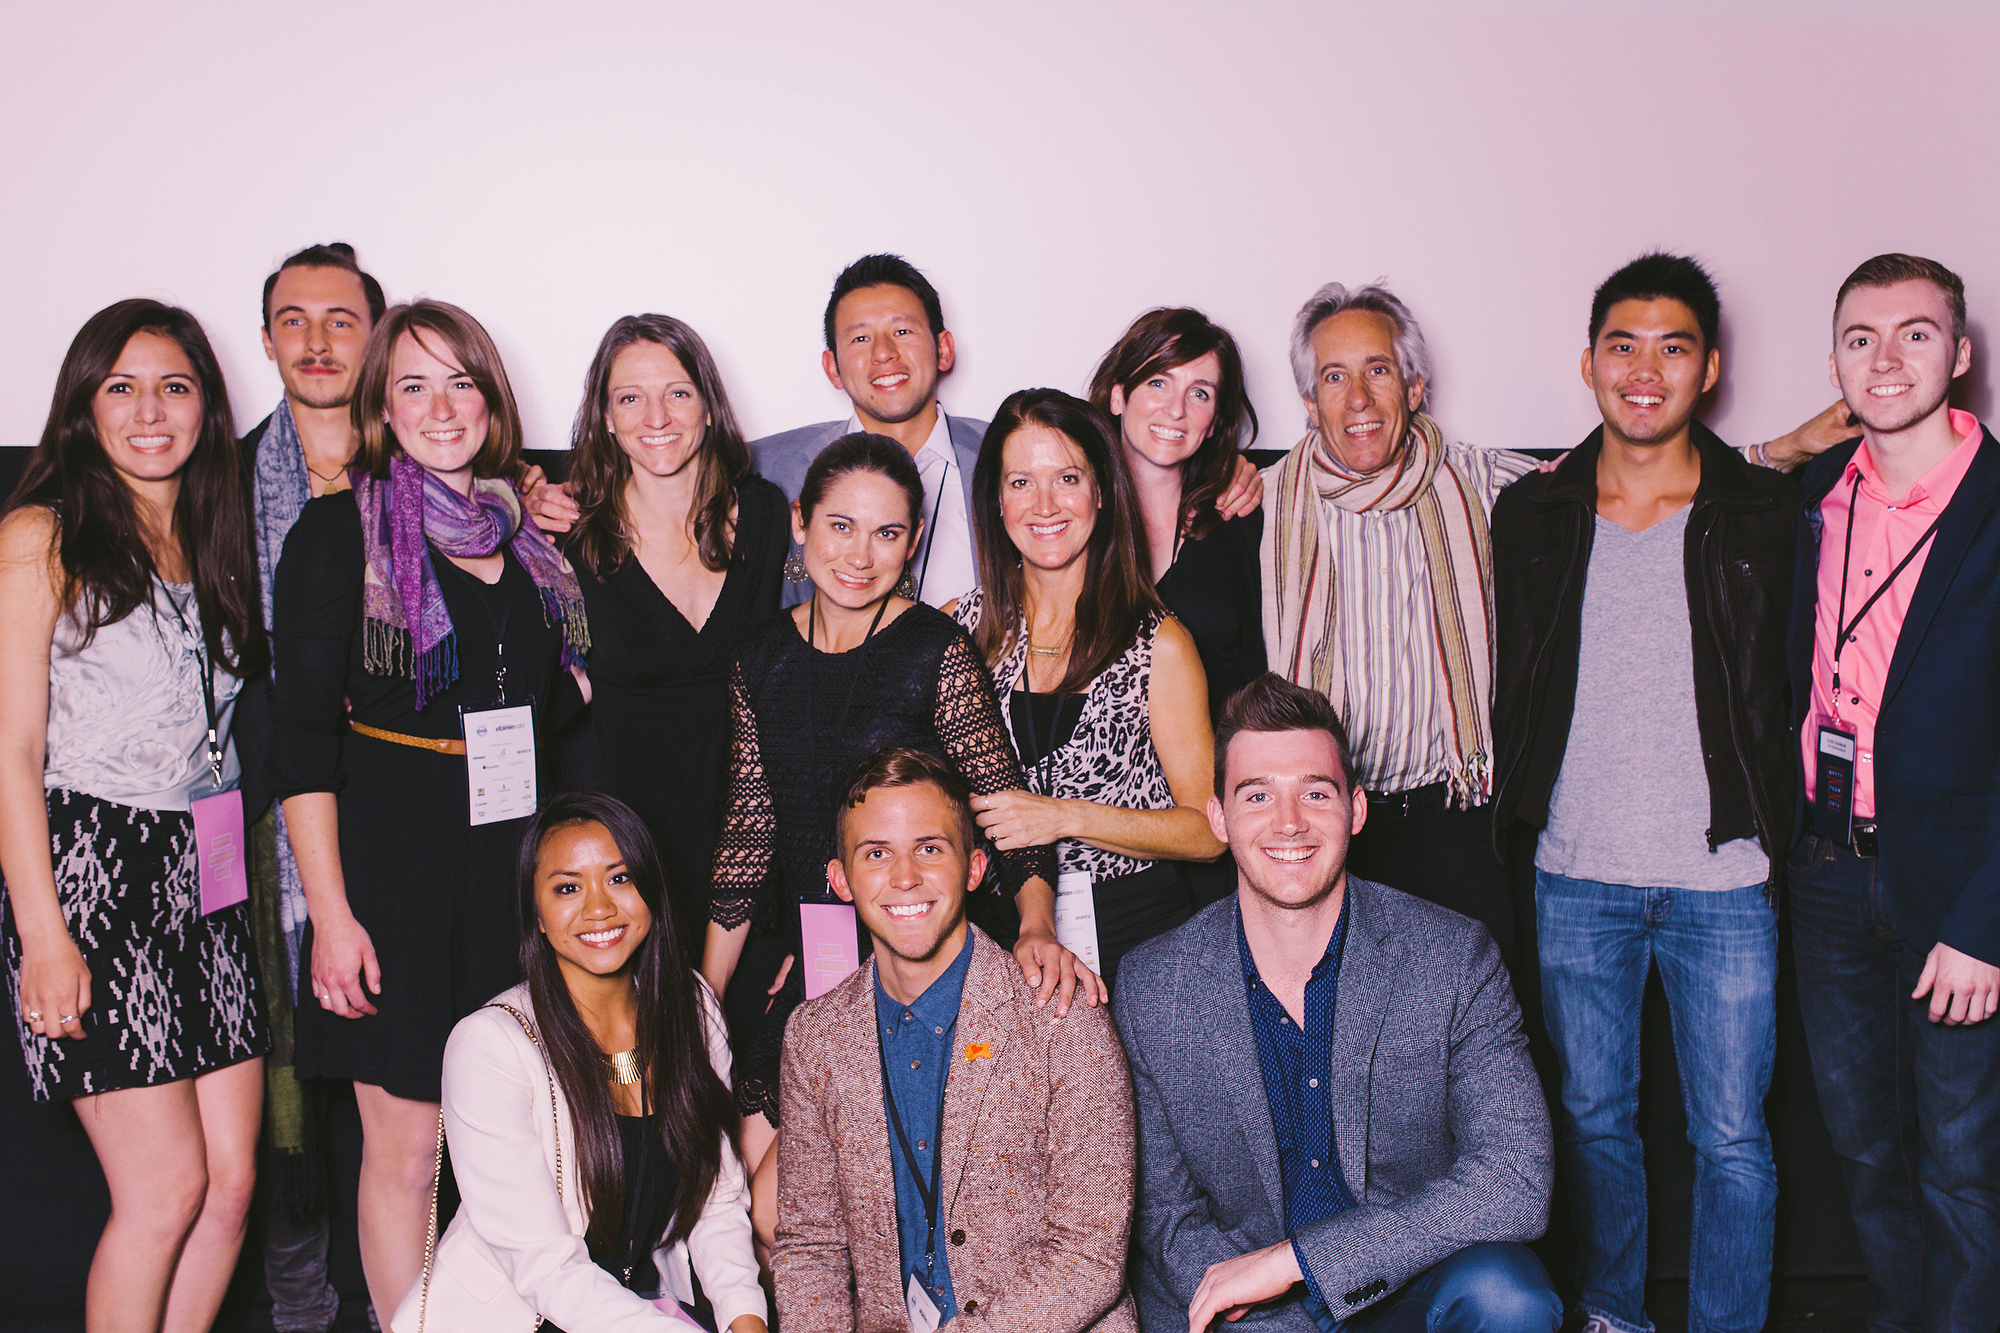 Just a handful of the many ladies and gents who brought filmic life to Vitamin Angels. (Photo ©  Mark Malijan)